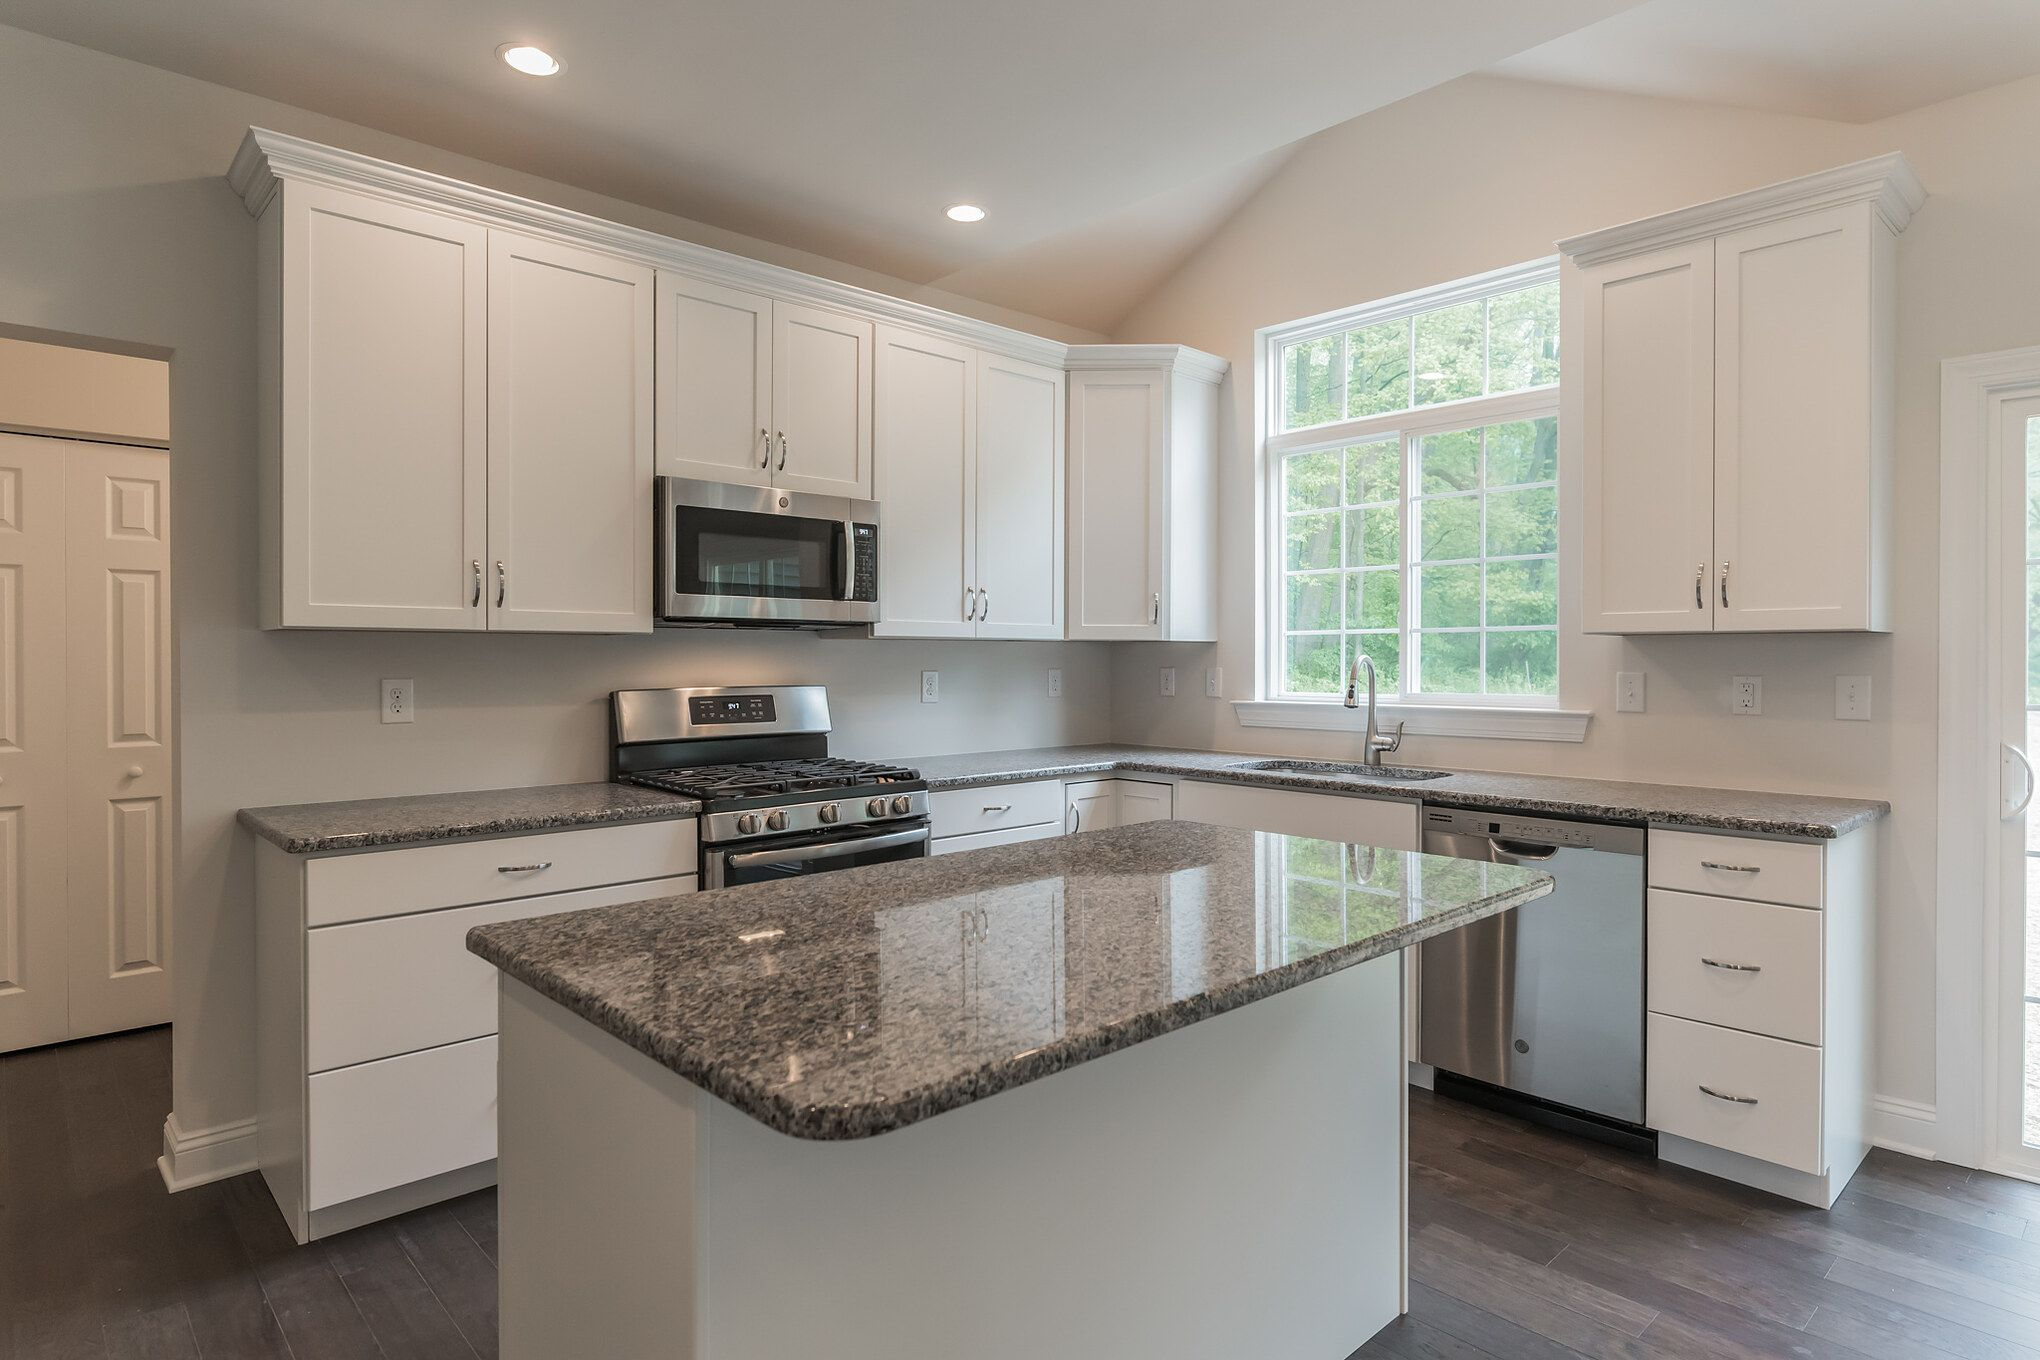 Kitchen featured in the Hawthorne By Rouse Chamberlin Homes in Philadelphia, PA